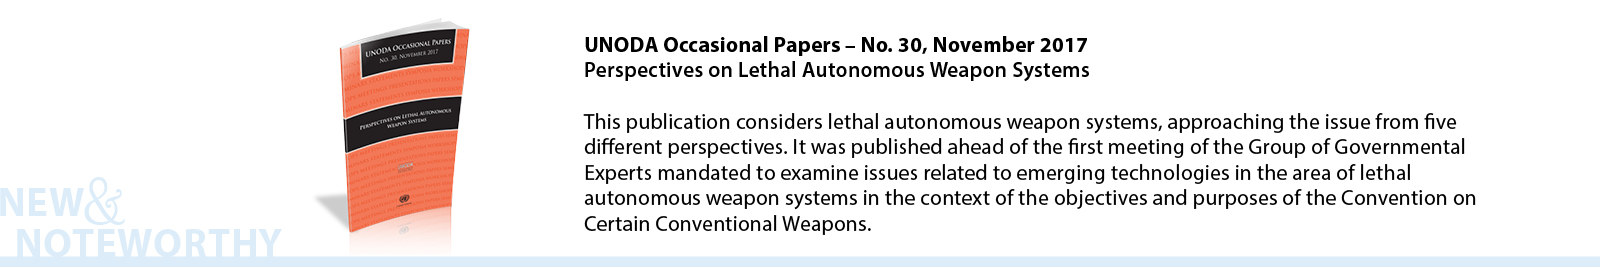 This publication considers lethal autonomous weapon systems, approaching the issue from five different perspectives. It has been published ahead of the first meeting of the Group of Governmental Experts of the High Contracting Parties to the Convention on Certain Conventional Weapons mandated to examine issues related to emerging technologies in the area of lethal autonomous weapon systems in the context of the objectives and purposes of the Convention.